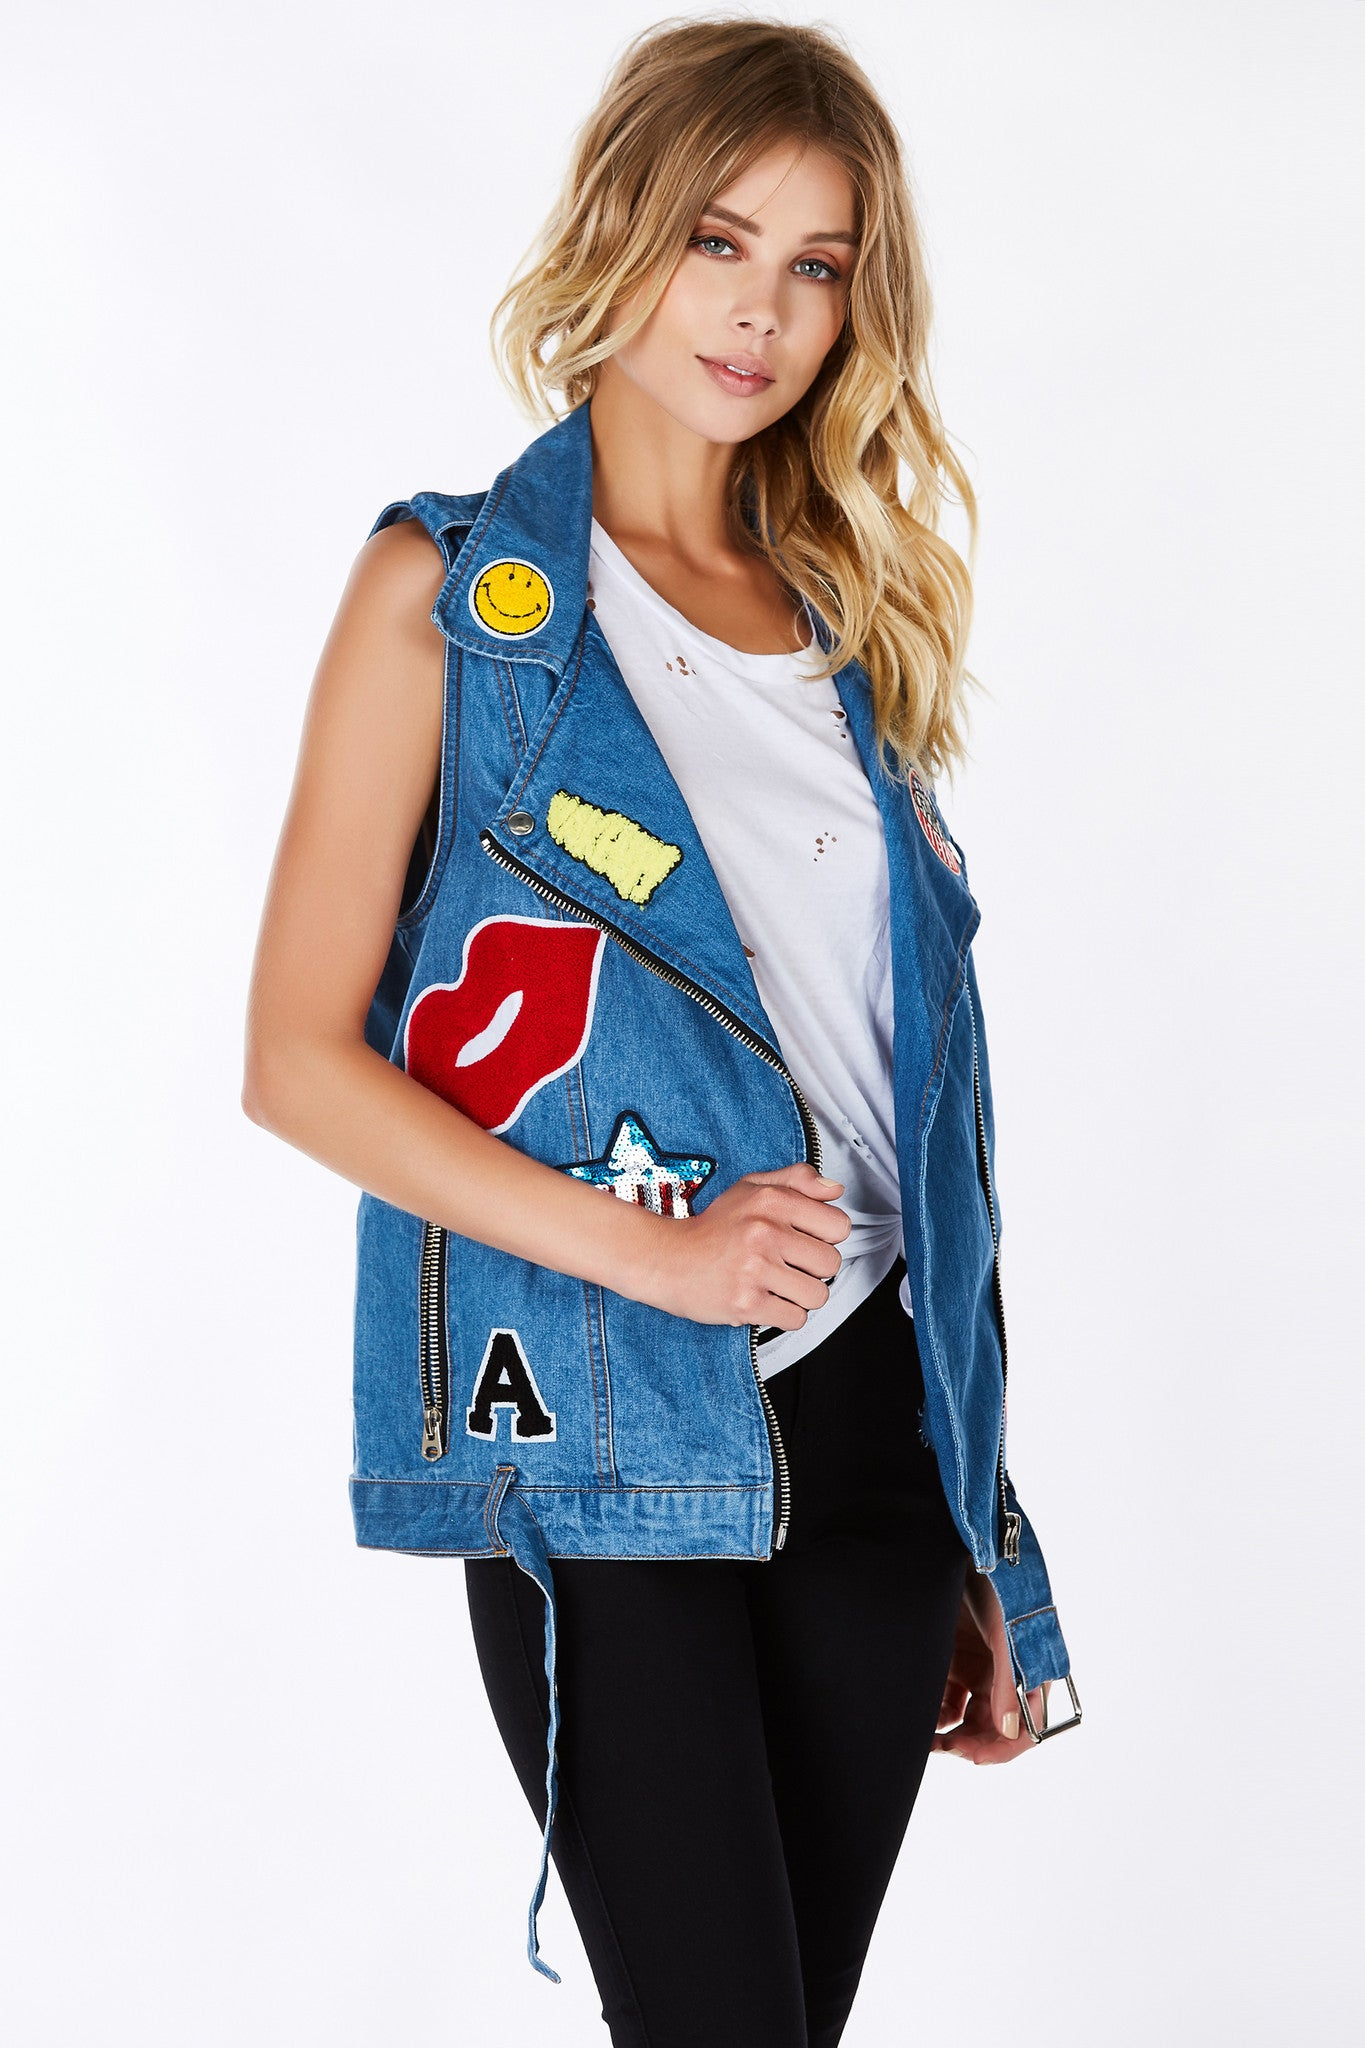 An incredible denim vest with awesome patches throughout the front for personality and style! Sturdy material to last you a lifetime. Classic moto style cut and design. The perfect additional to any basic outfit.